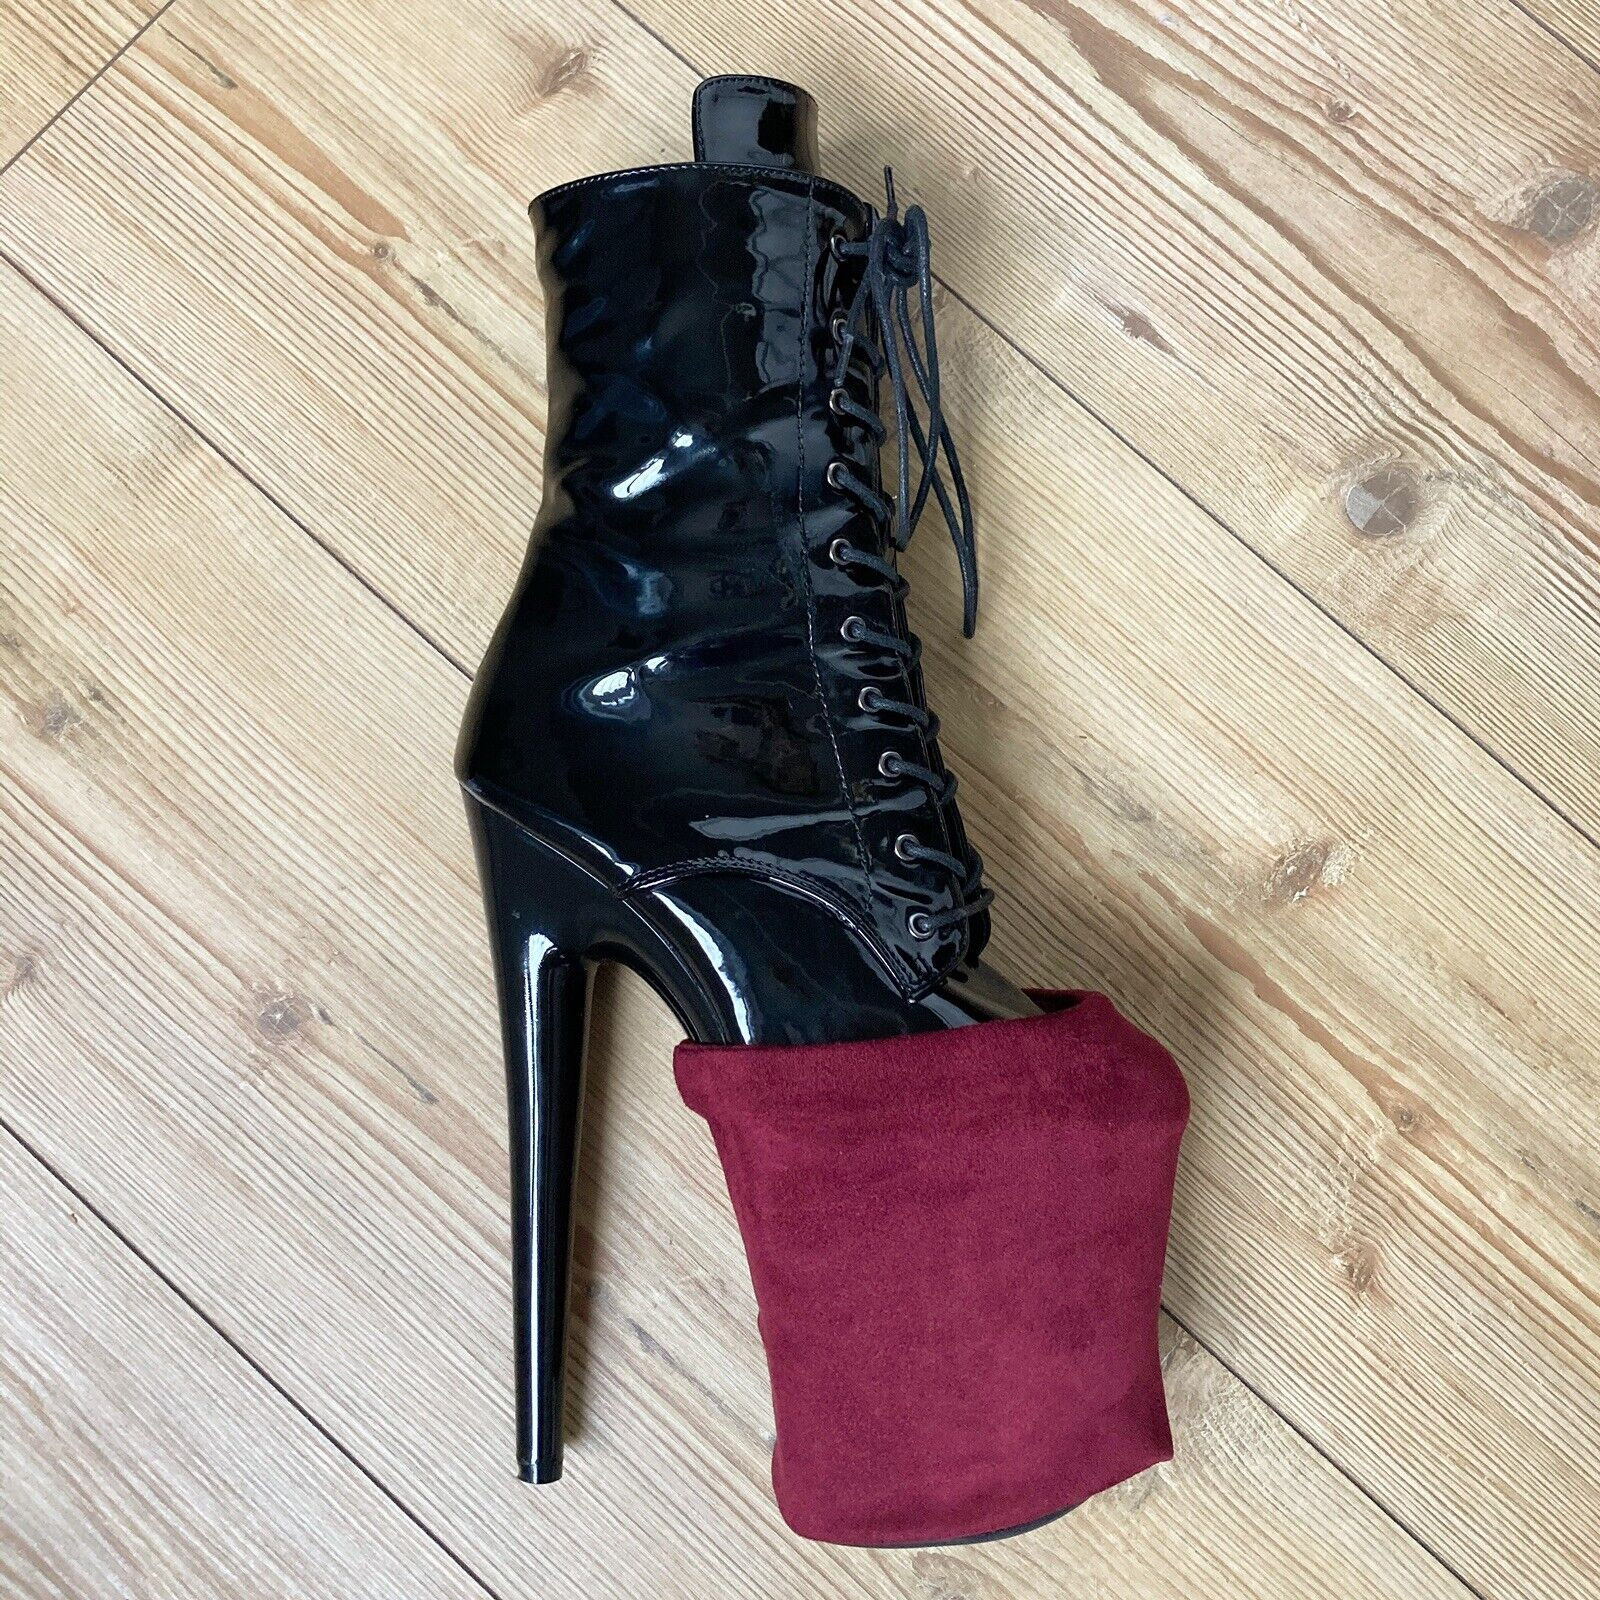 Red Faux Suede Exotic Pole Dancing Pleaser Heel Cover Protectors